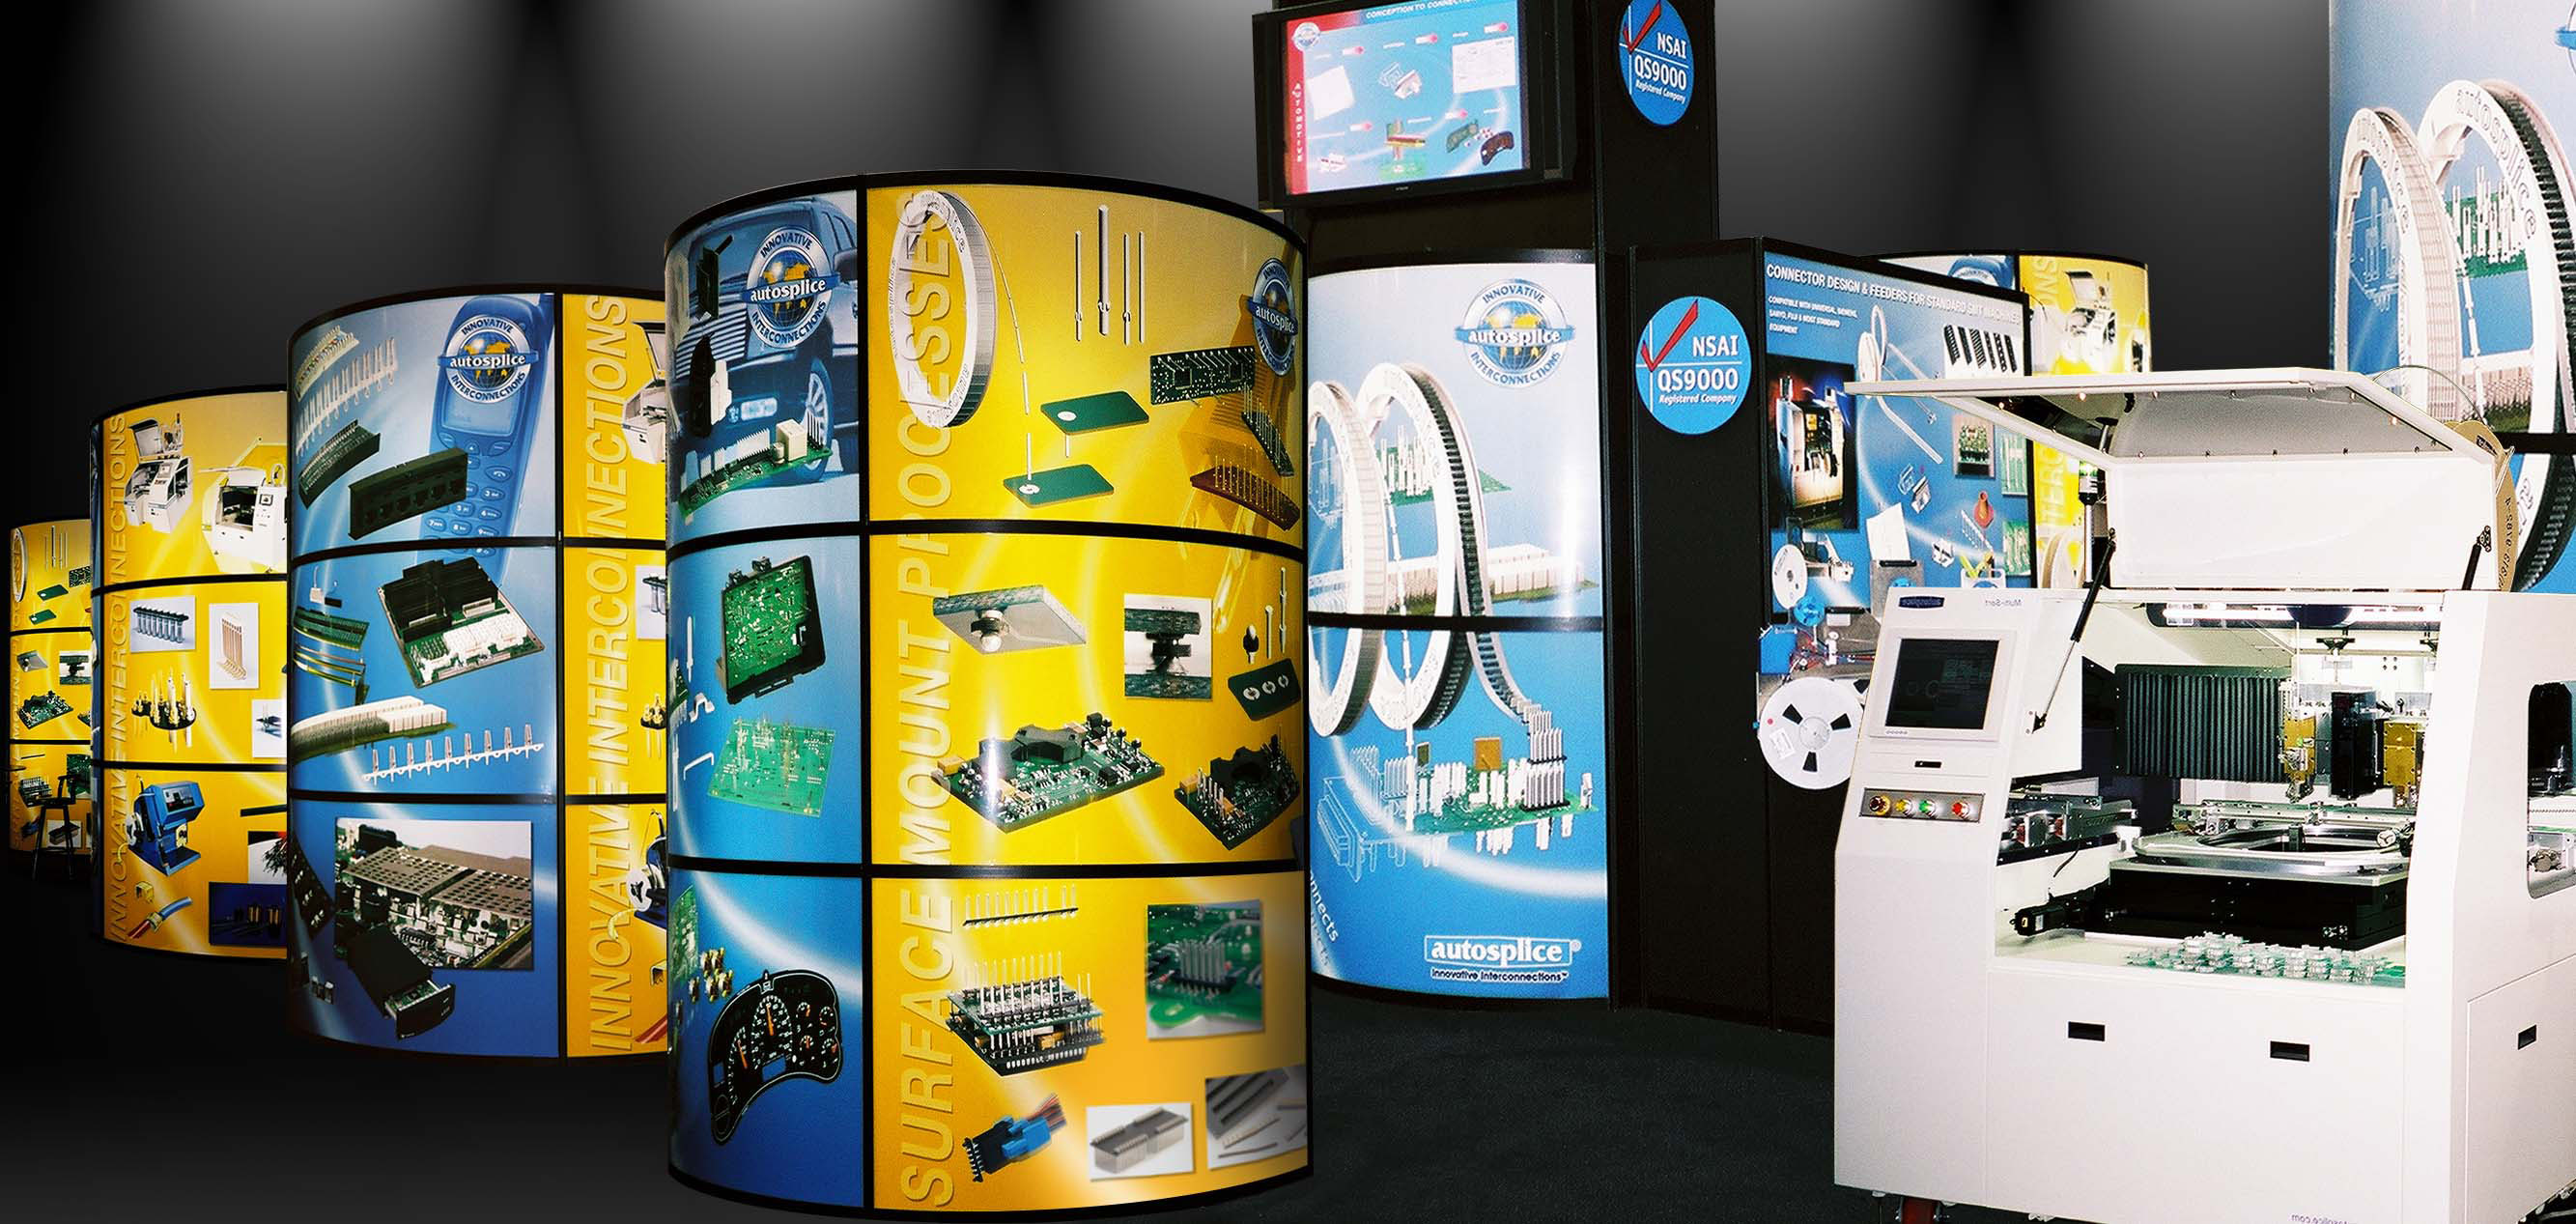 tradeshow exhibit design and product photography for an electronic components company